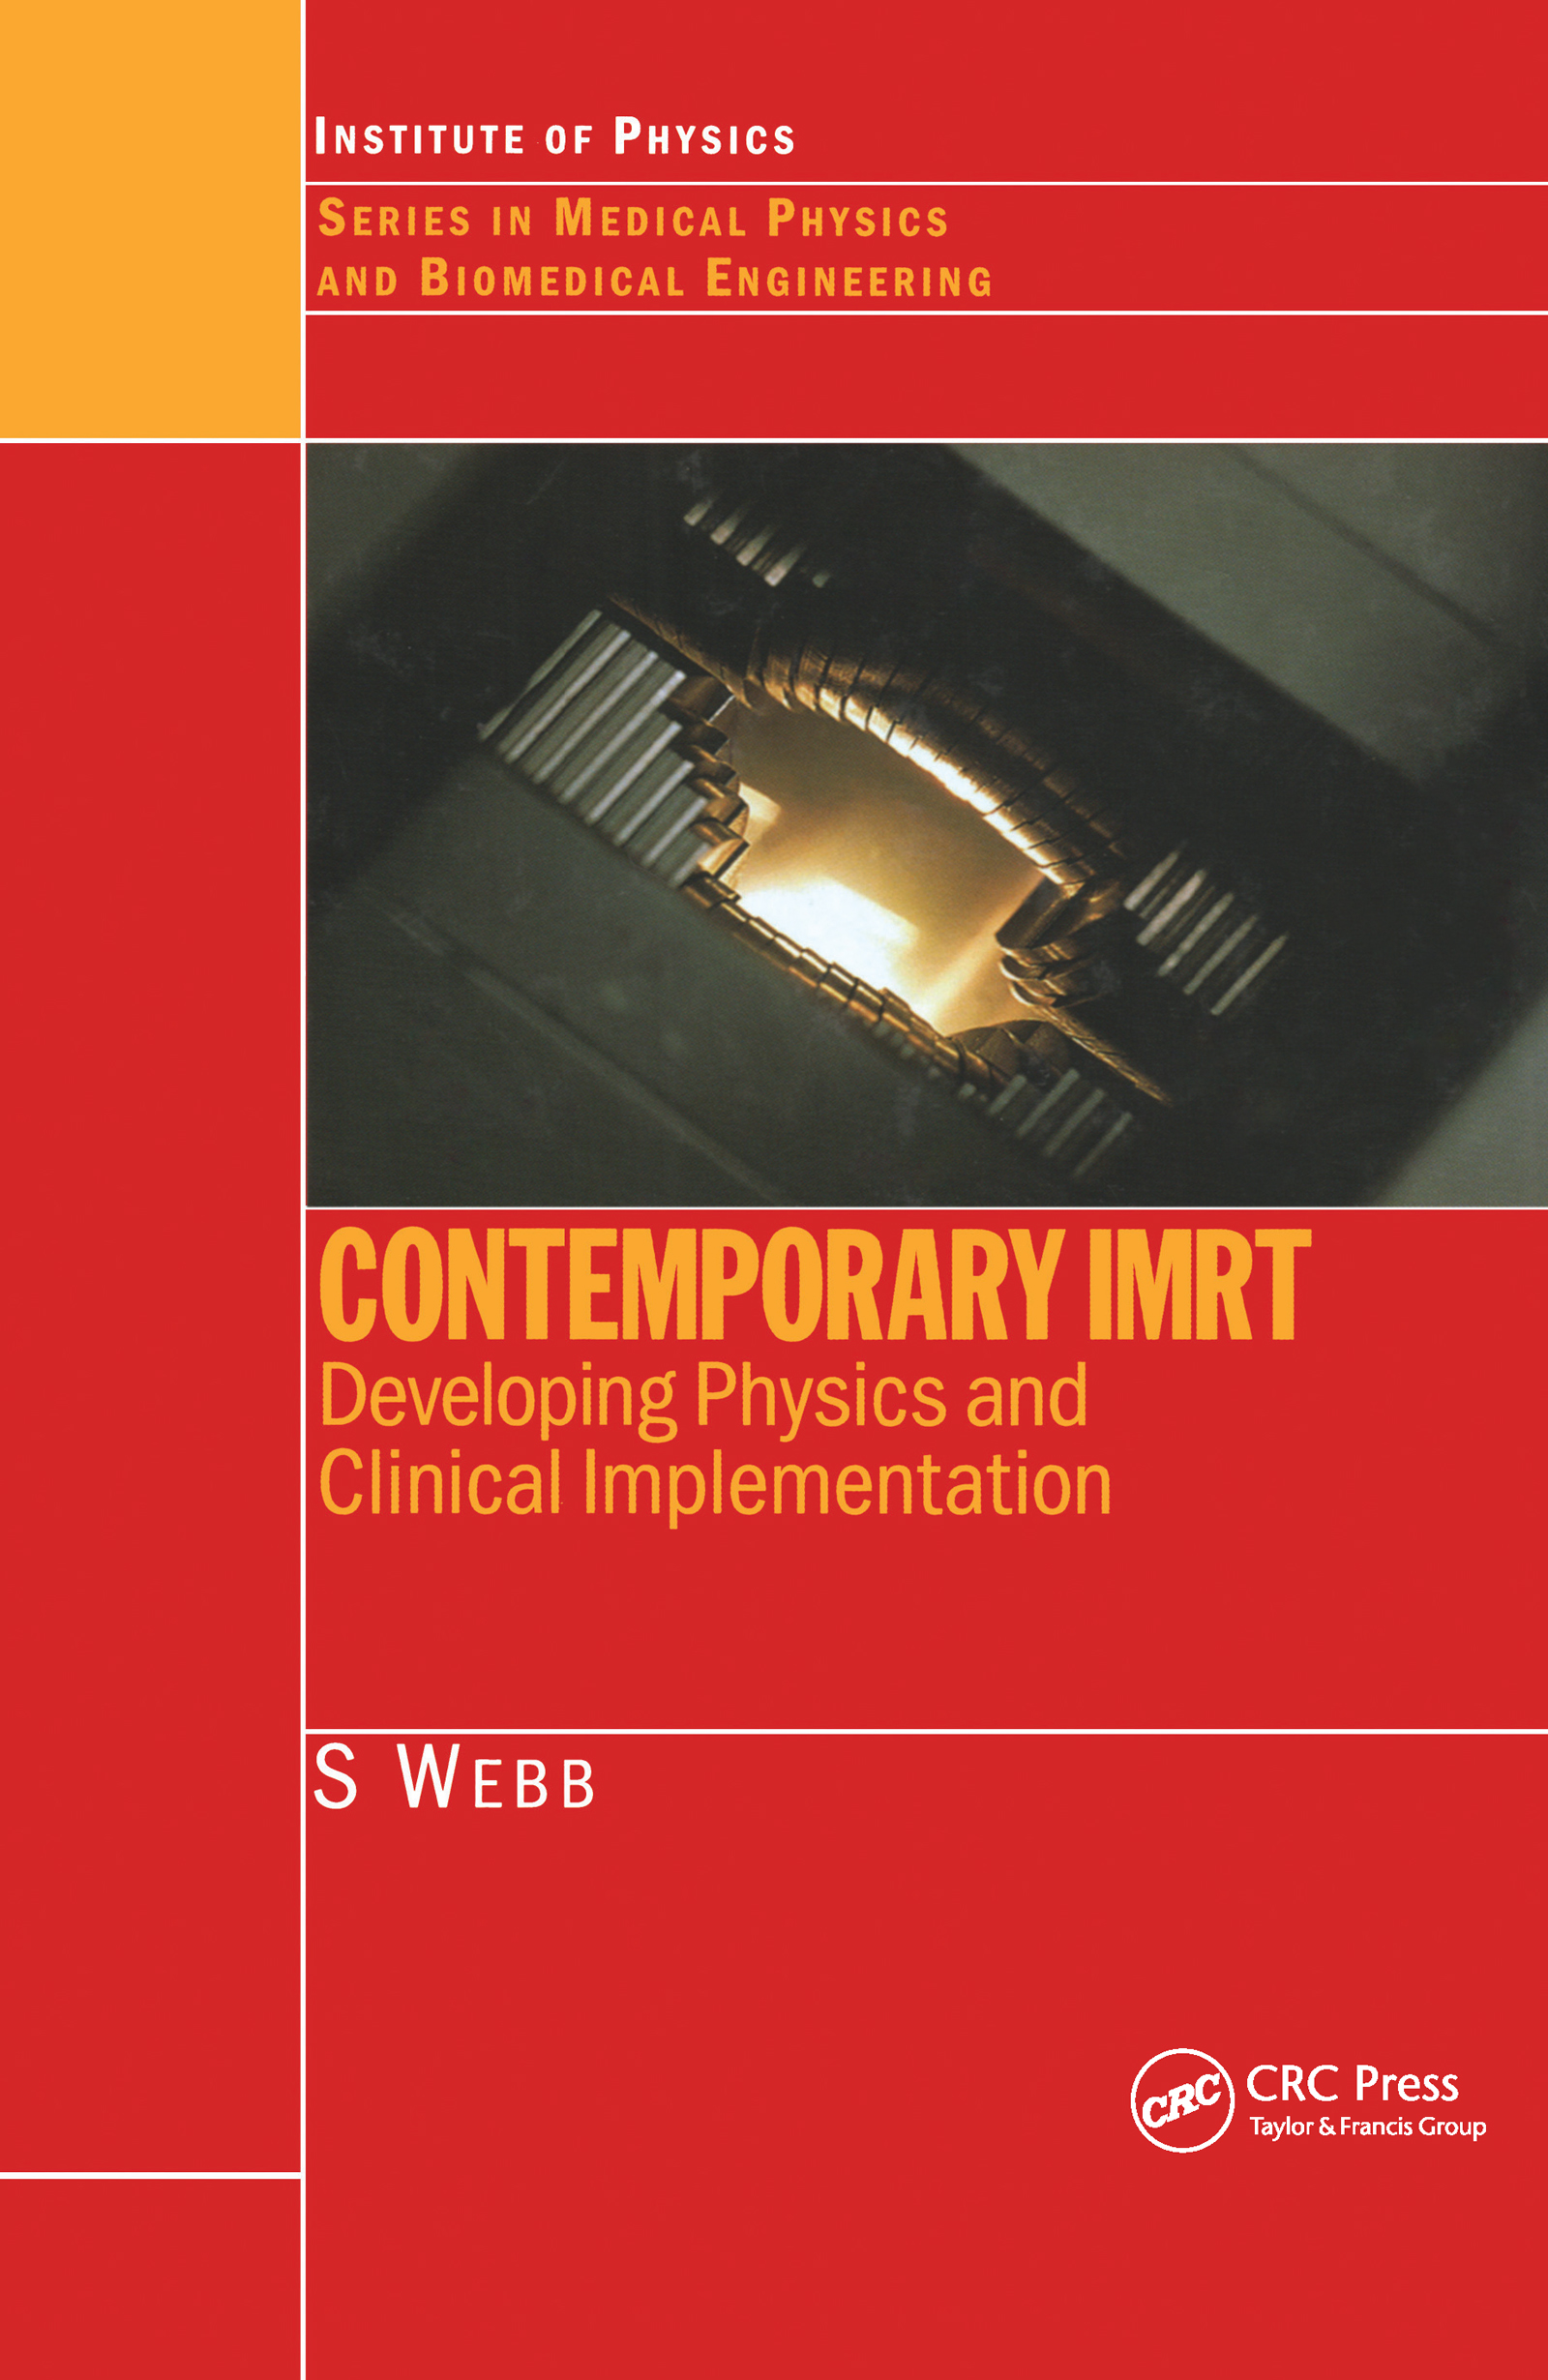 Contemporary IMRT: Developing Physics and Clinical Implementation book cover